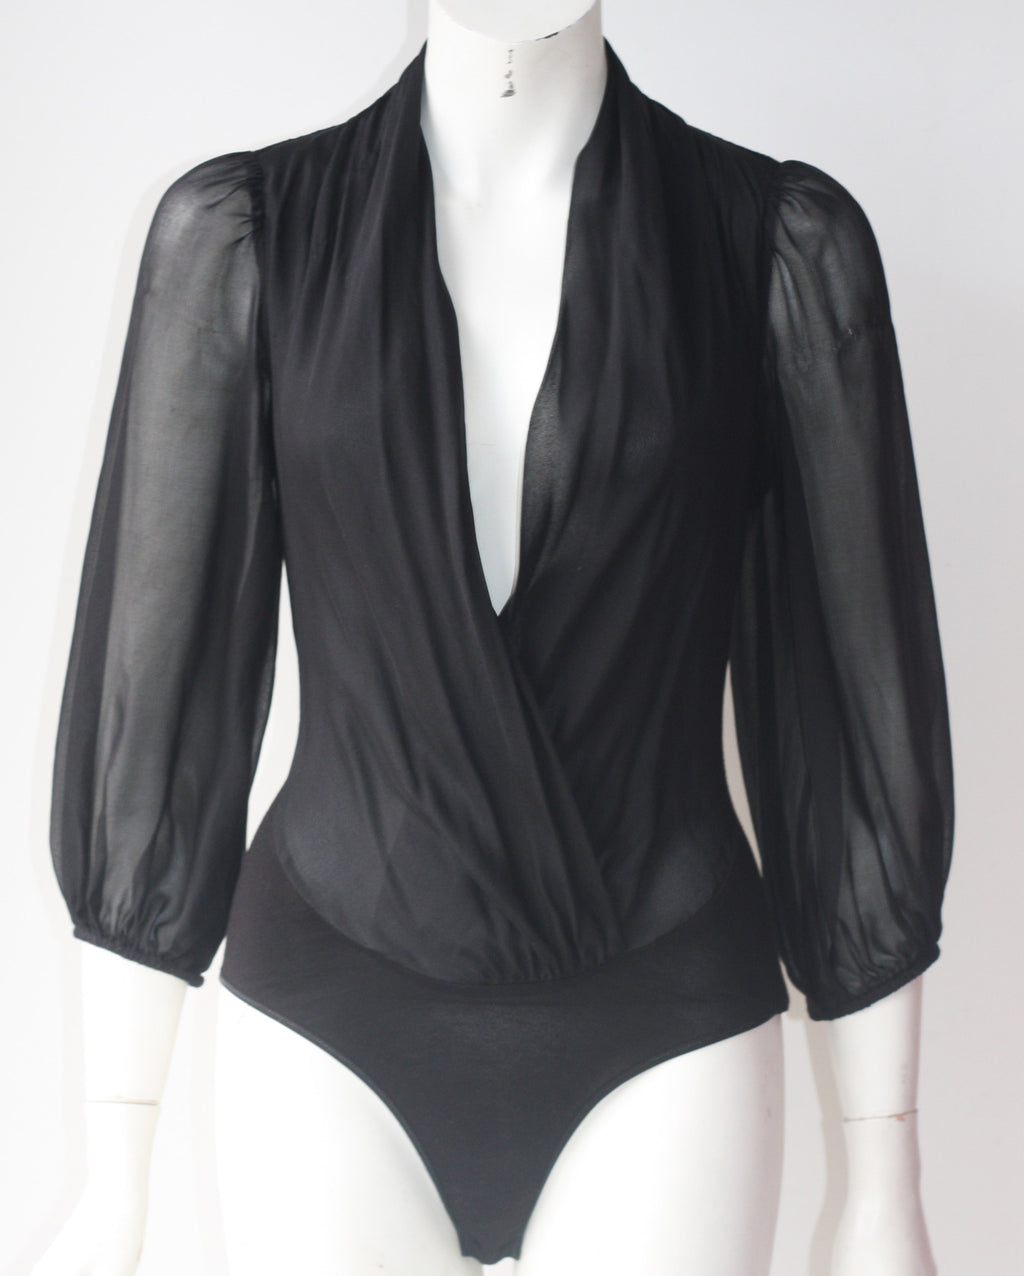 Guess By Marciano Daria Black Silk Long Sleeve Bodysuit - Joyce's Closet  - 1